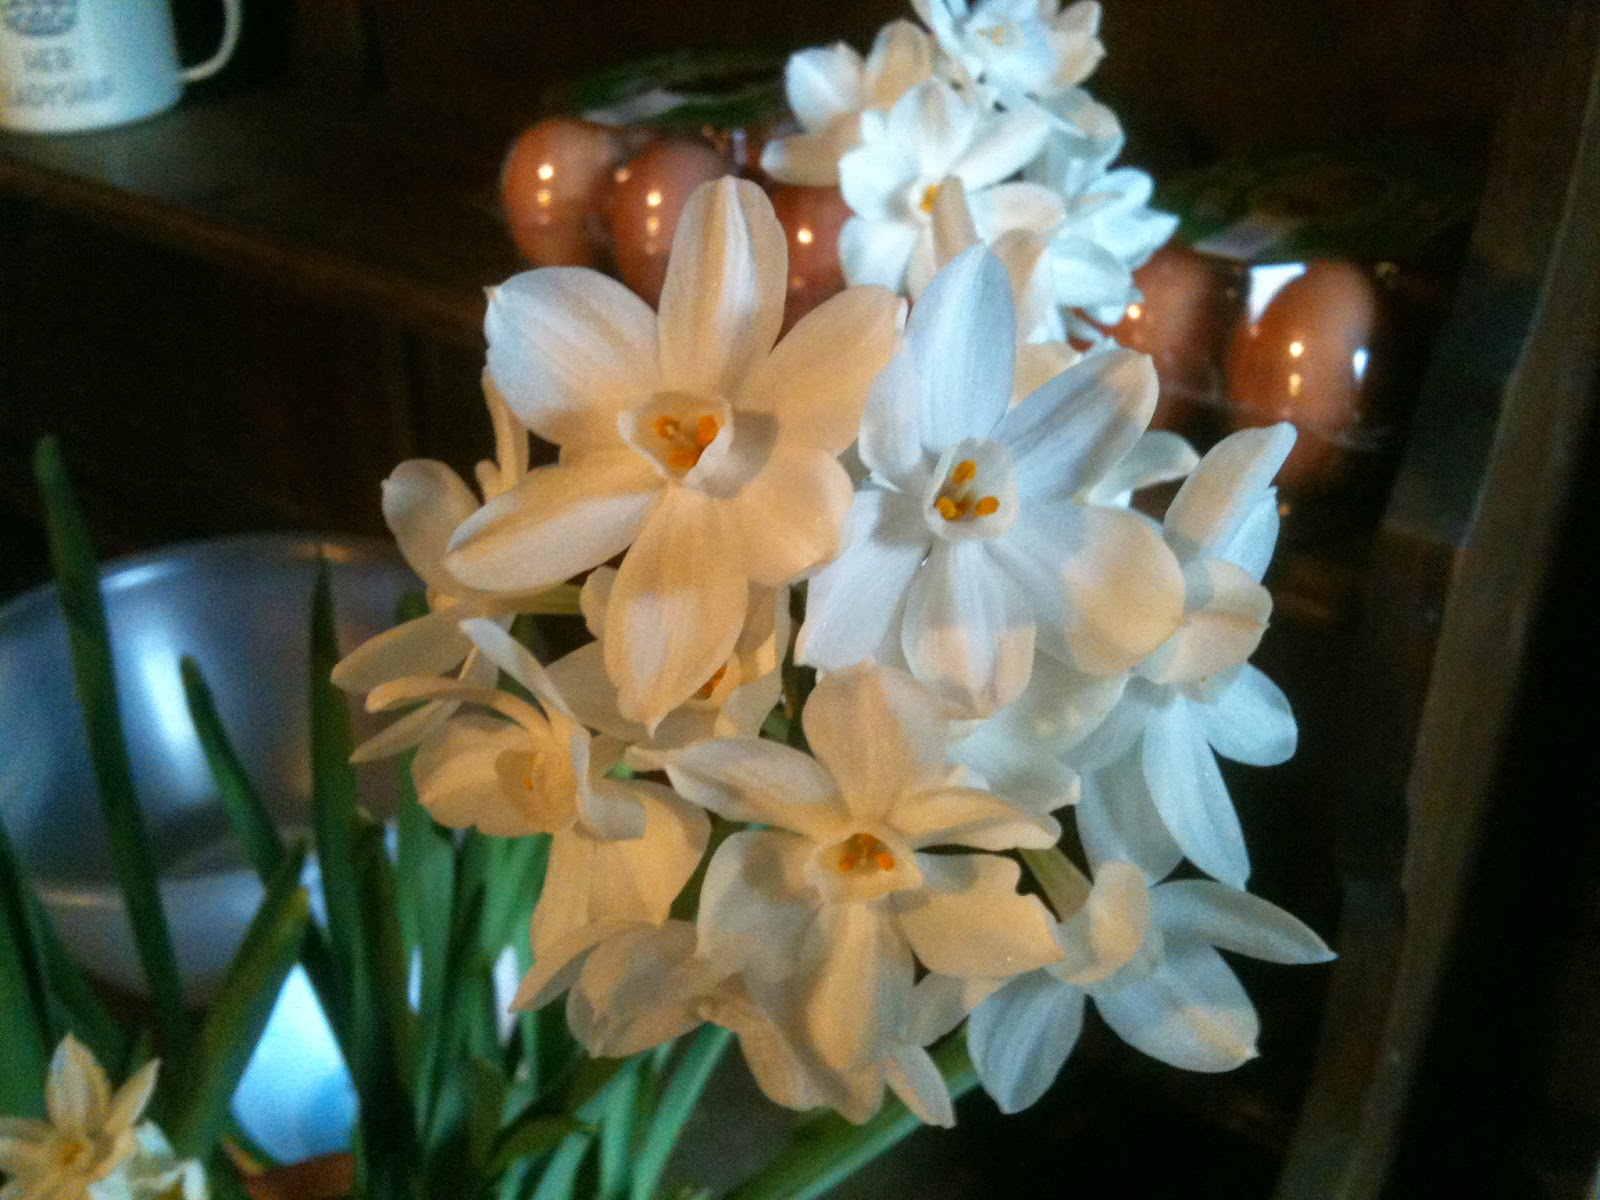 Paper Whites create a heady scent in the house #lifeonpigrow